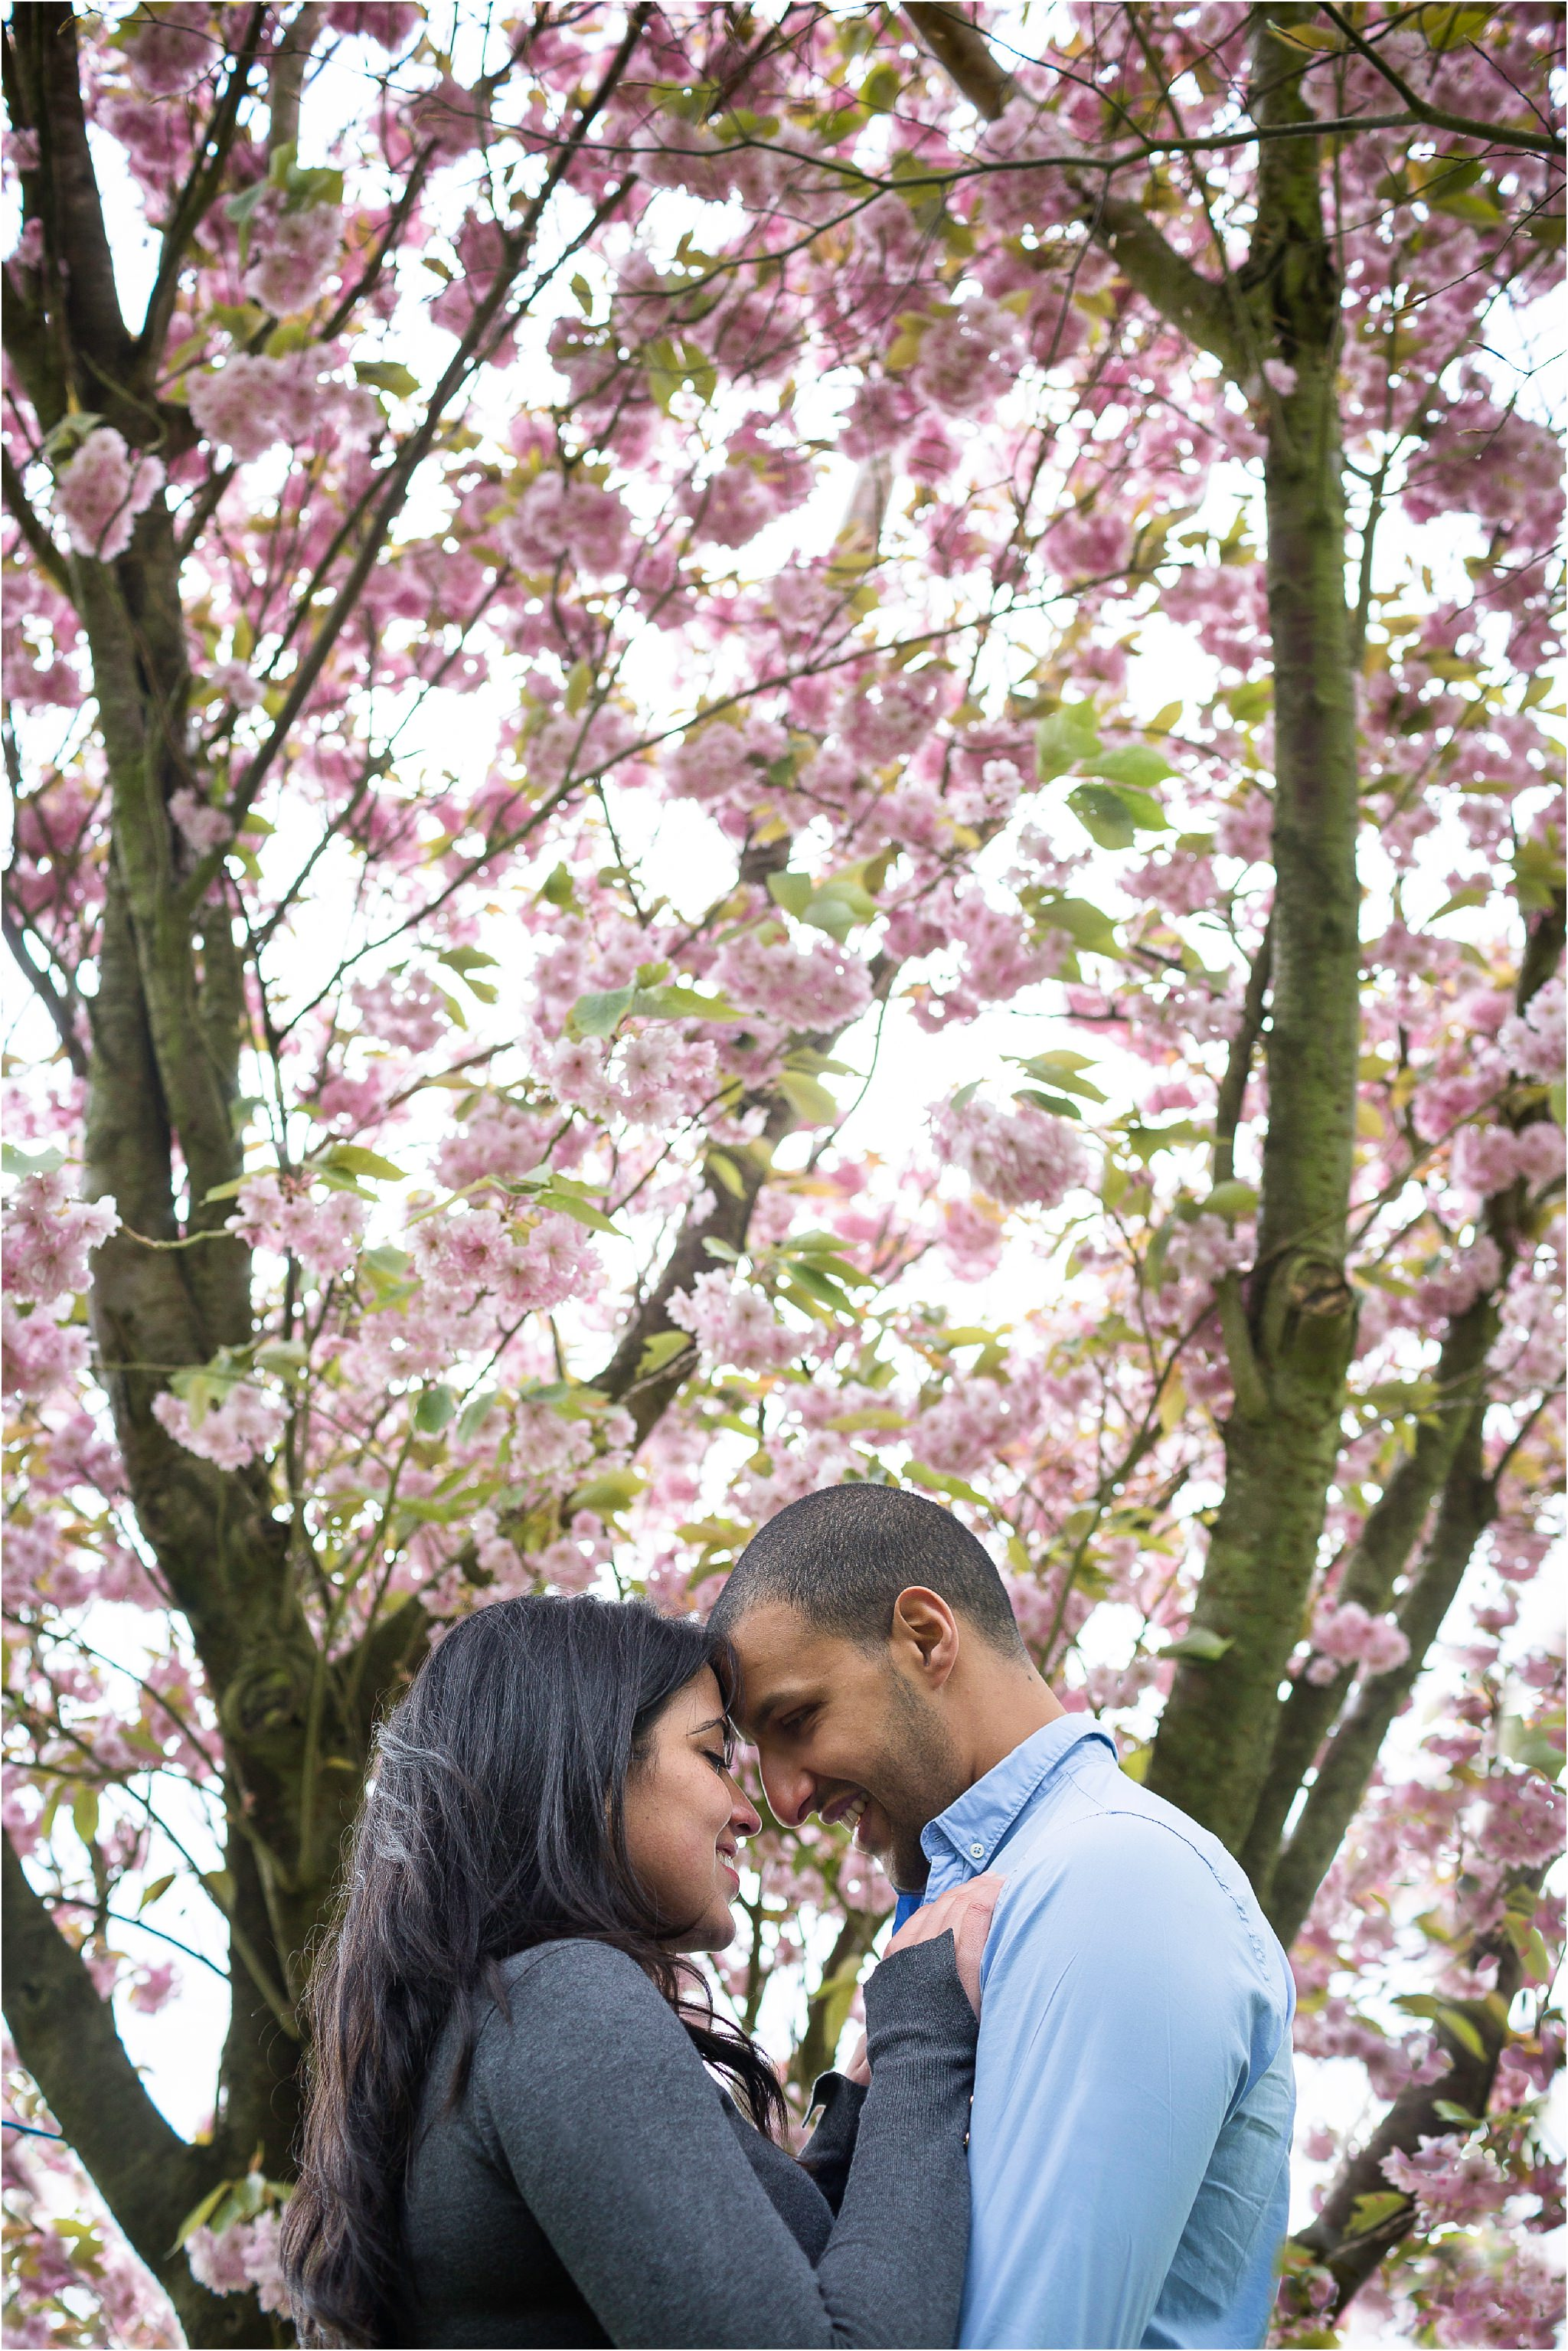 Couple smiling at each other under a cherry blossom tree.